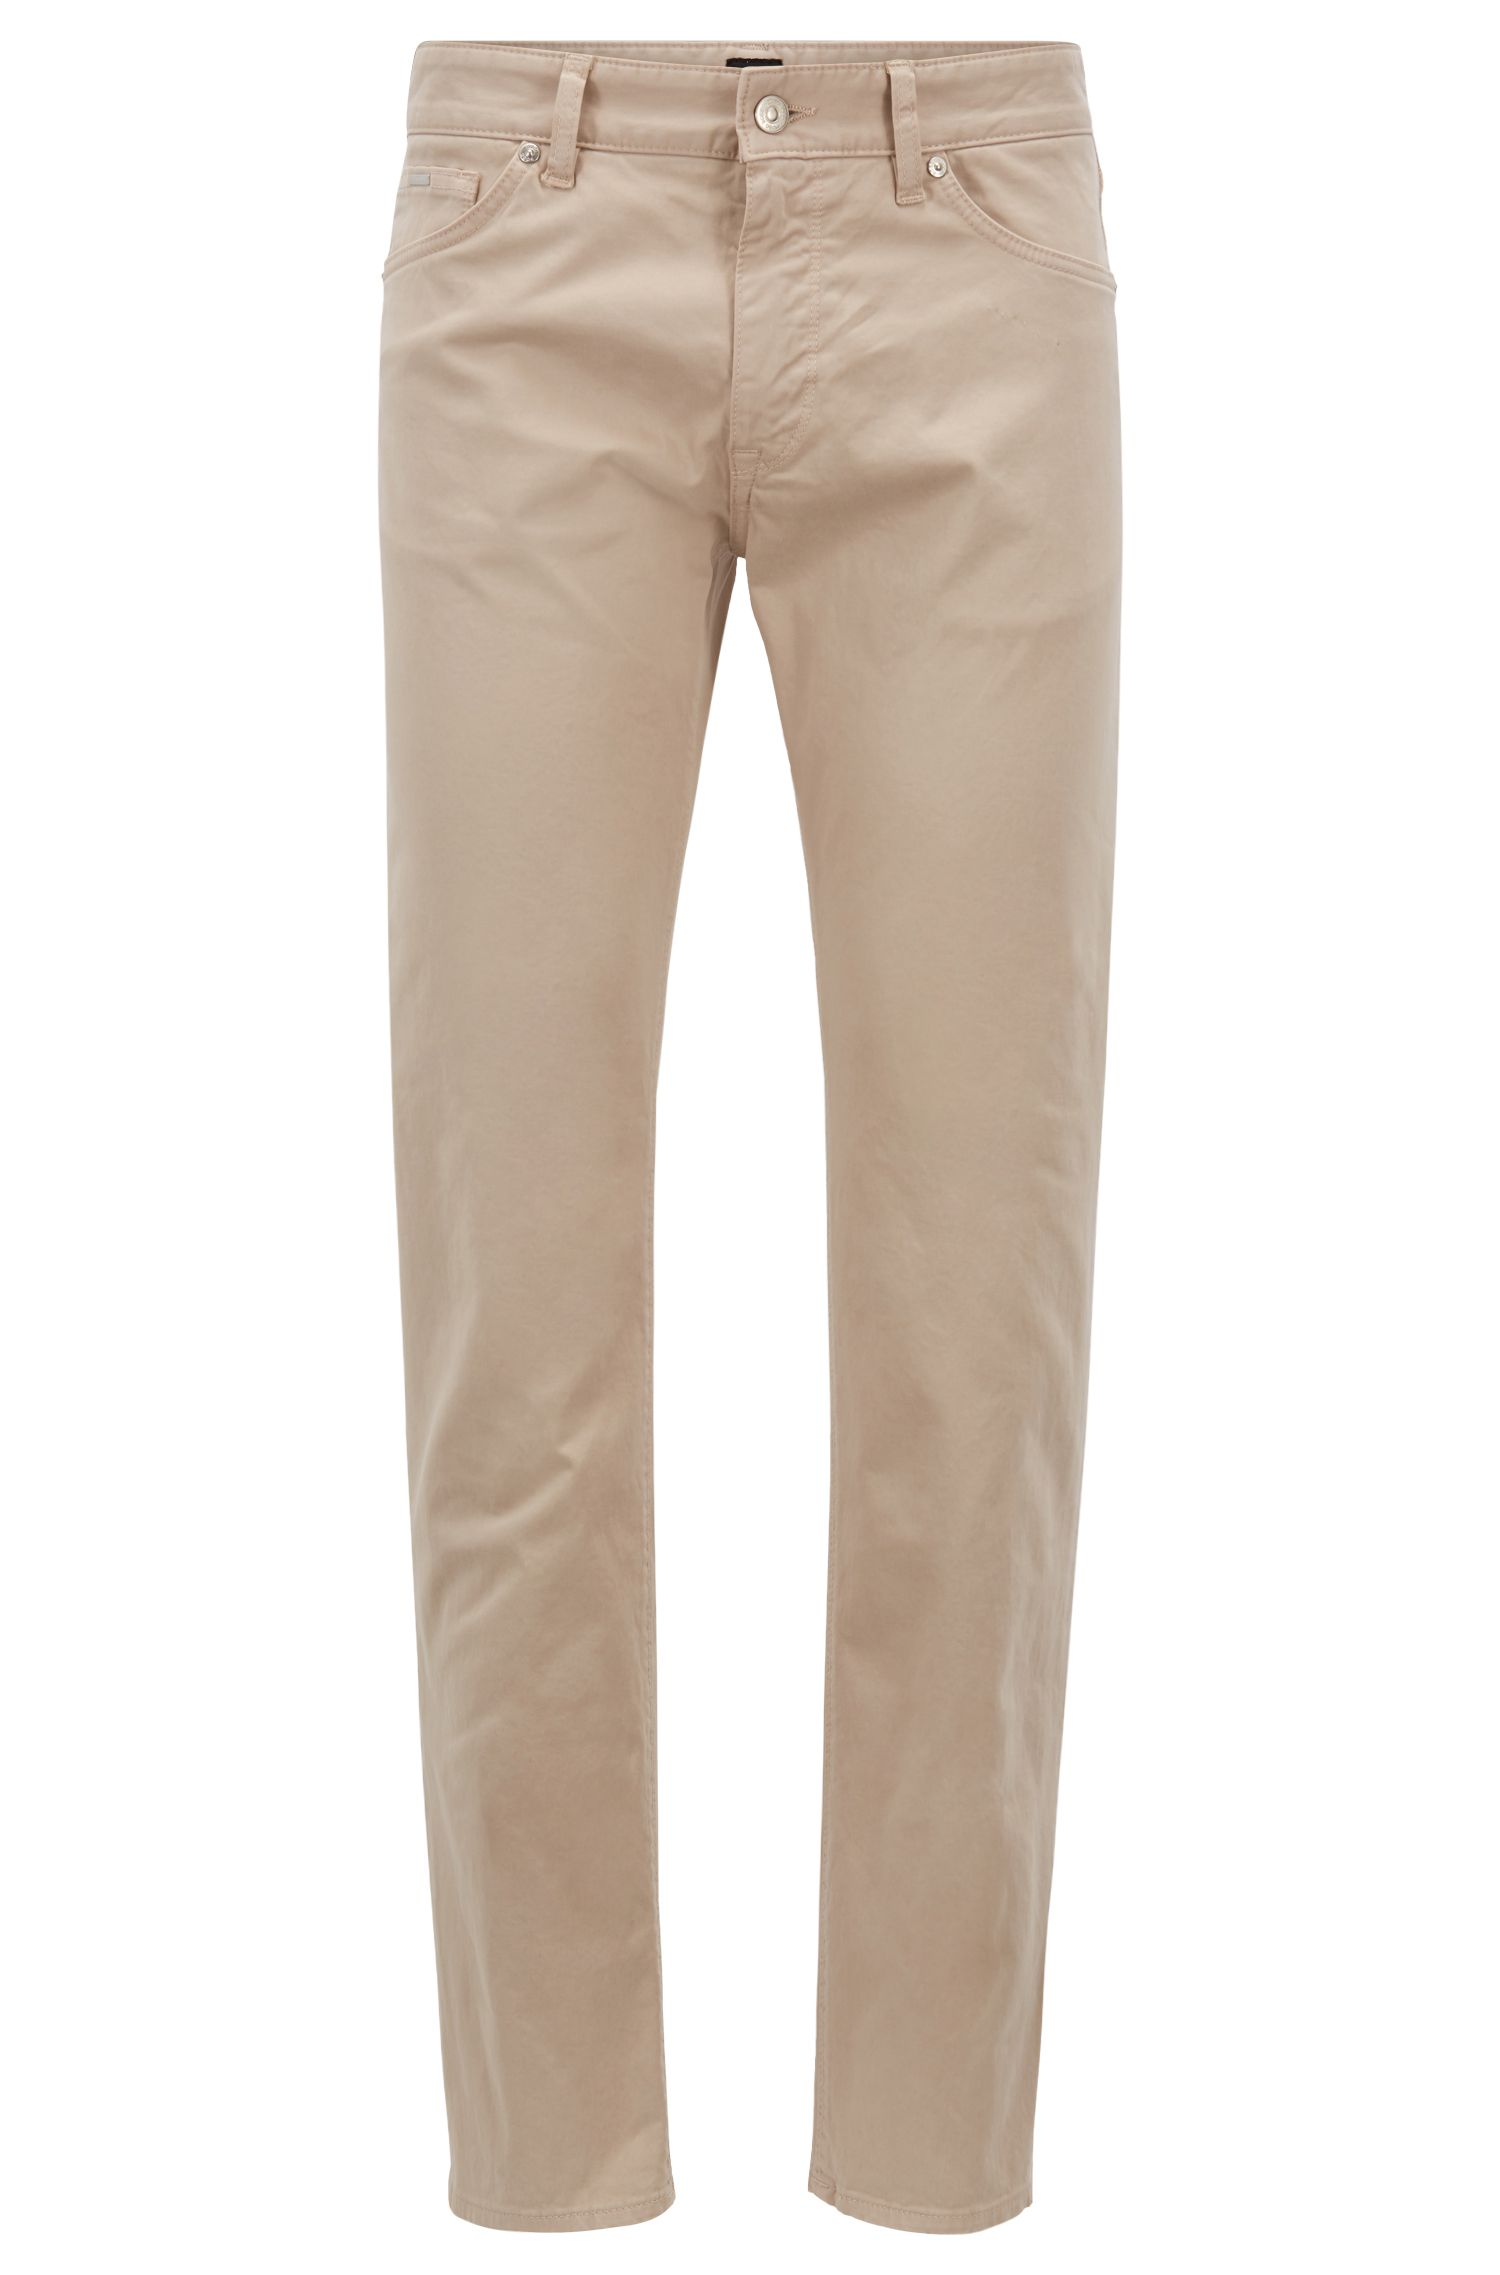 Jean Regular Fit en denim stretch effet satin brossé Diamond Brushed, Beige clair